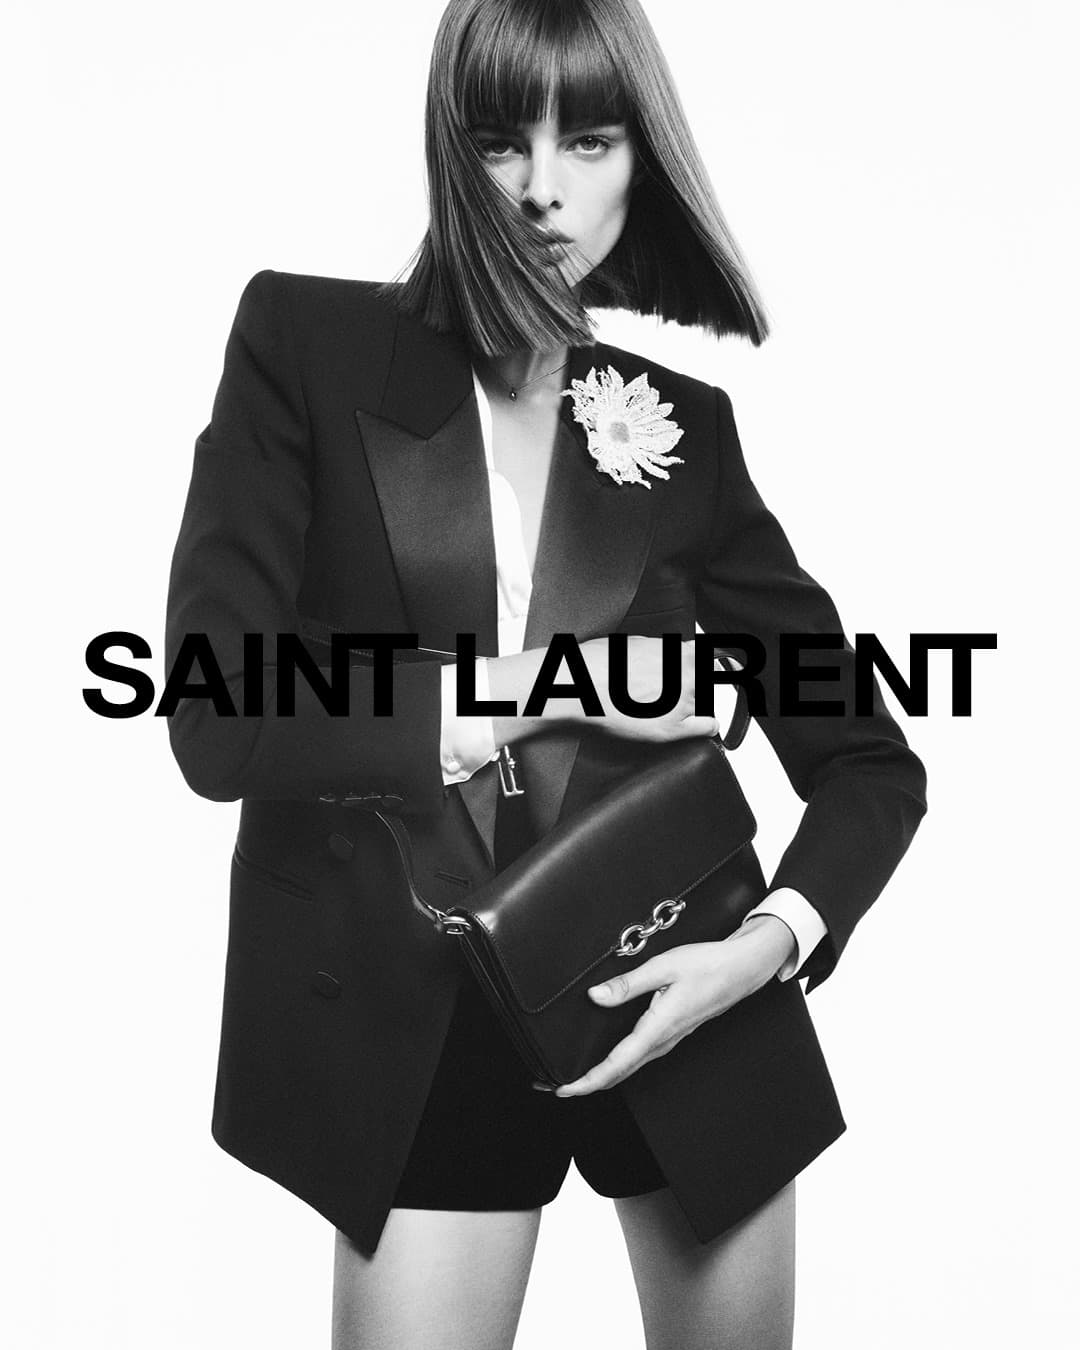 Saint Laurent #YSL37 Spring 2021 Ad Campaign Film & Photos